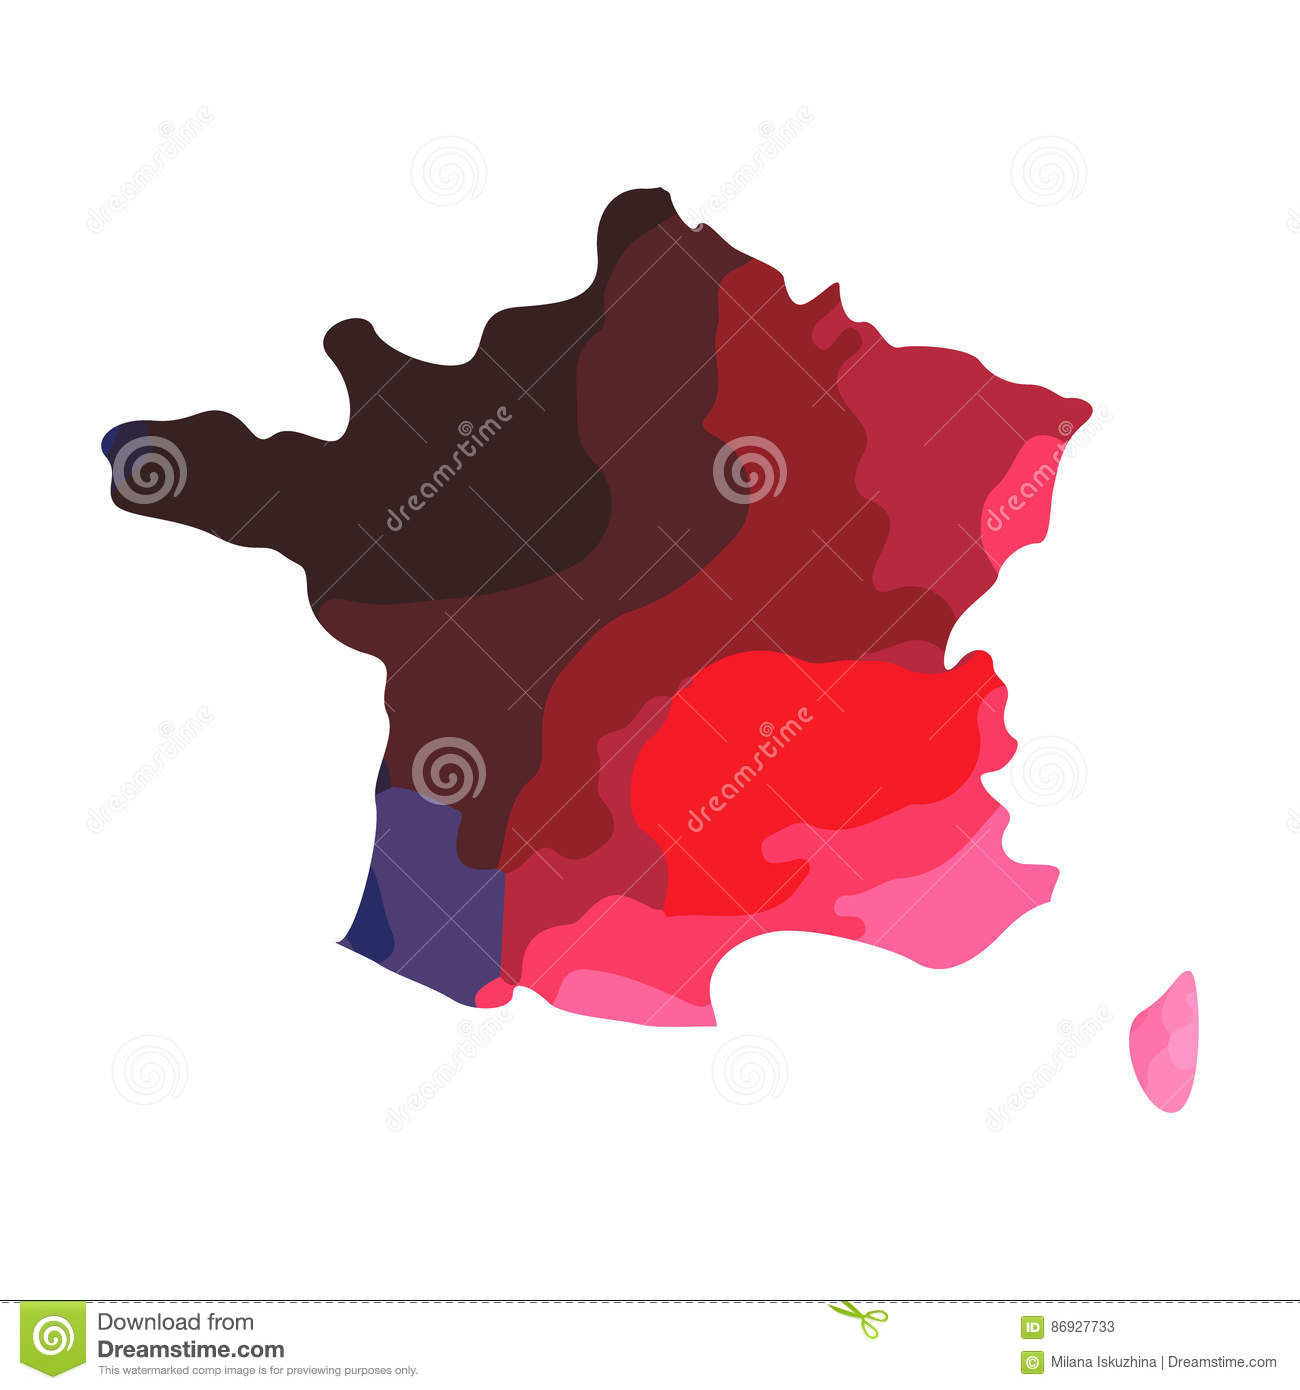 Pool Of Blood That Formed The Shape Of France Stock Vector Illustration Of City Texture 86927733 (or head chopped off or any kind of dismemberment). pool of blood that formed the shape of france stock vector illustration of city texture 86927733